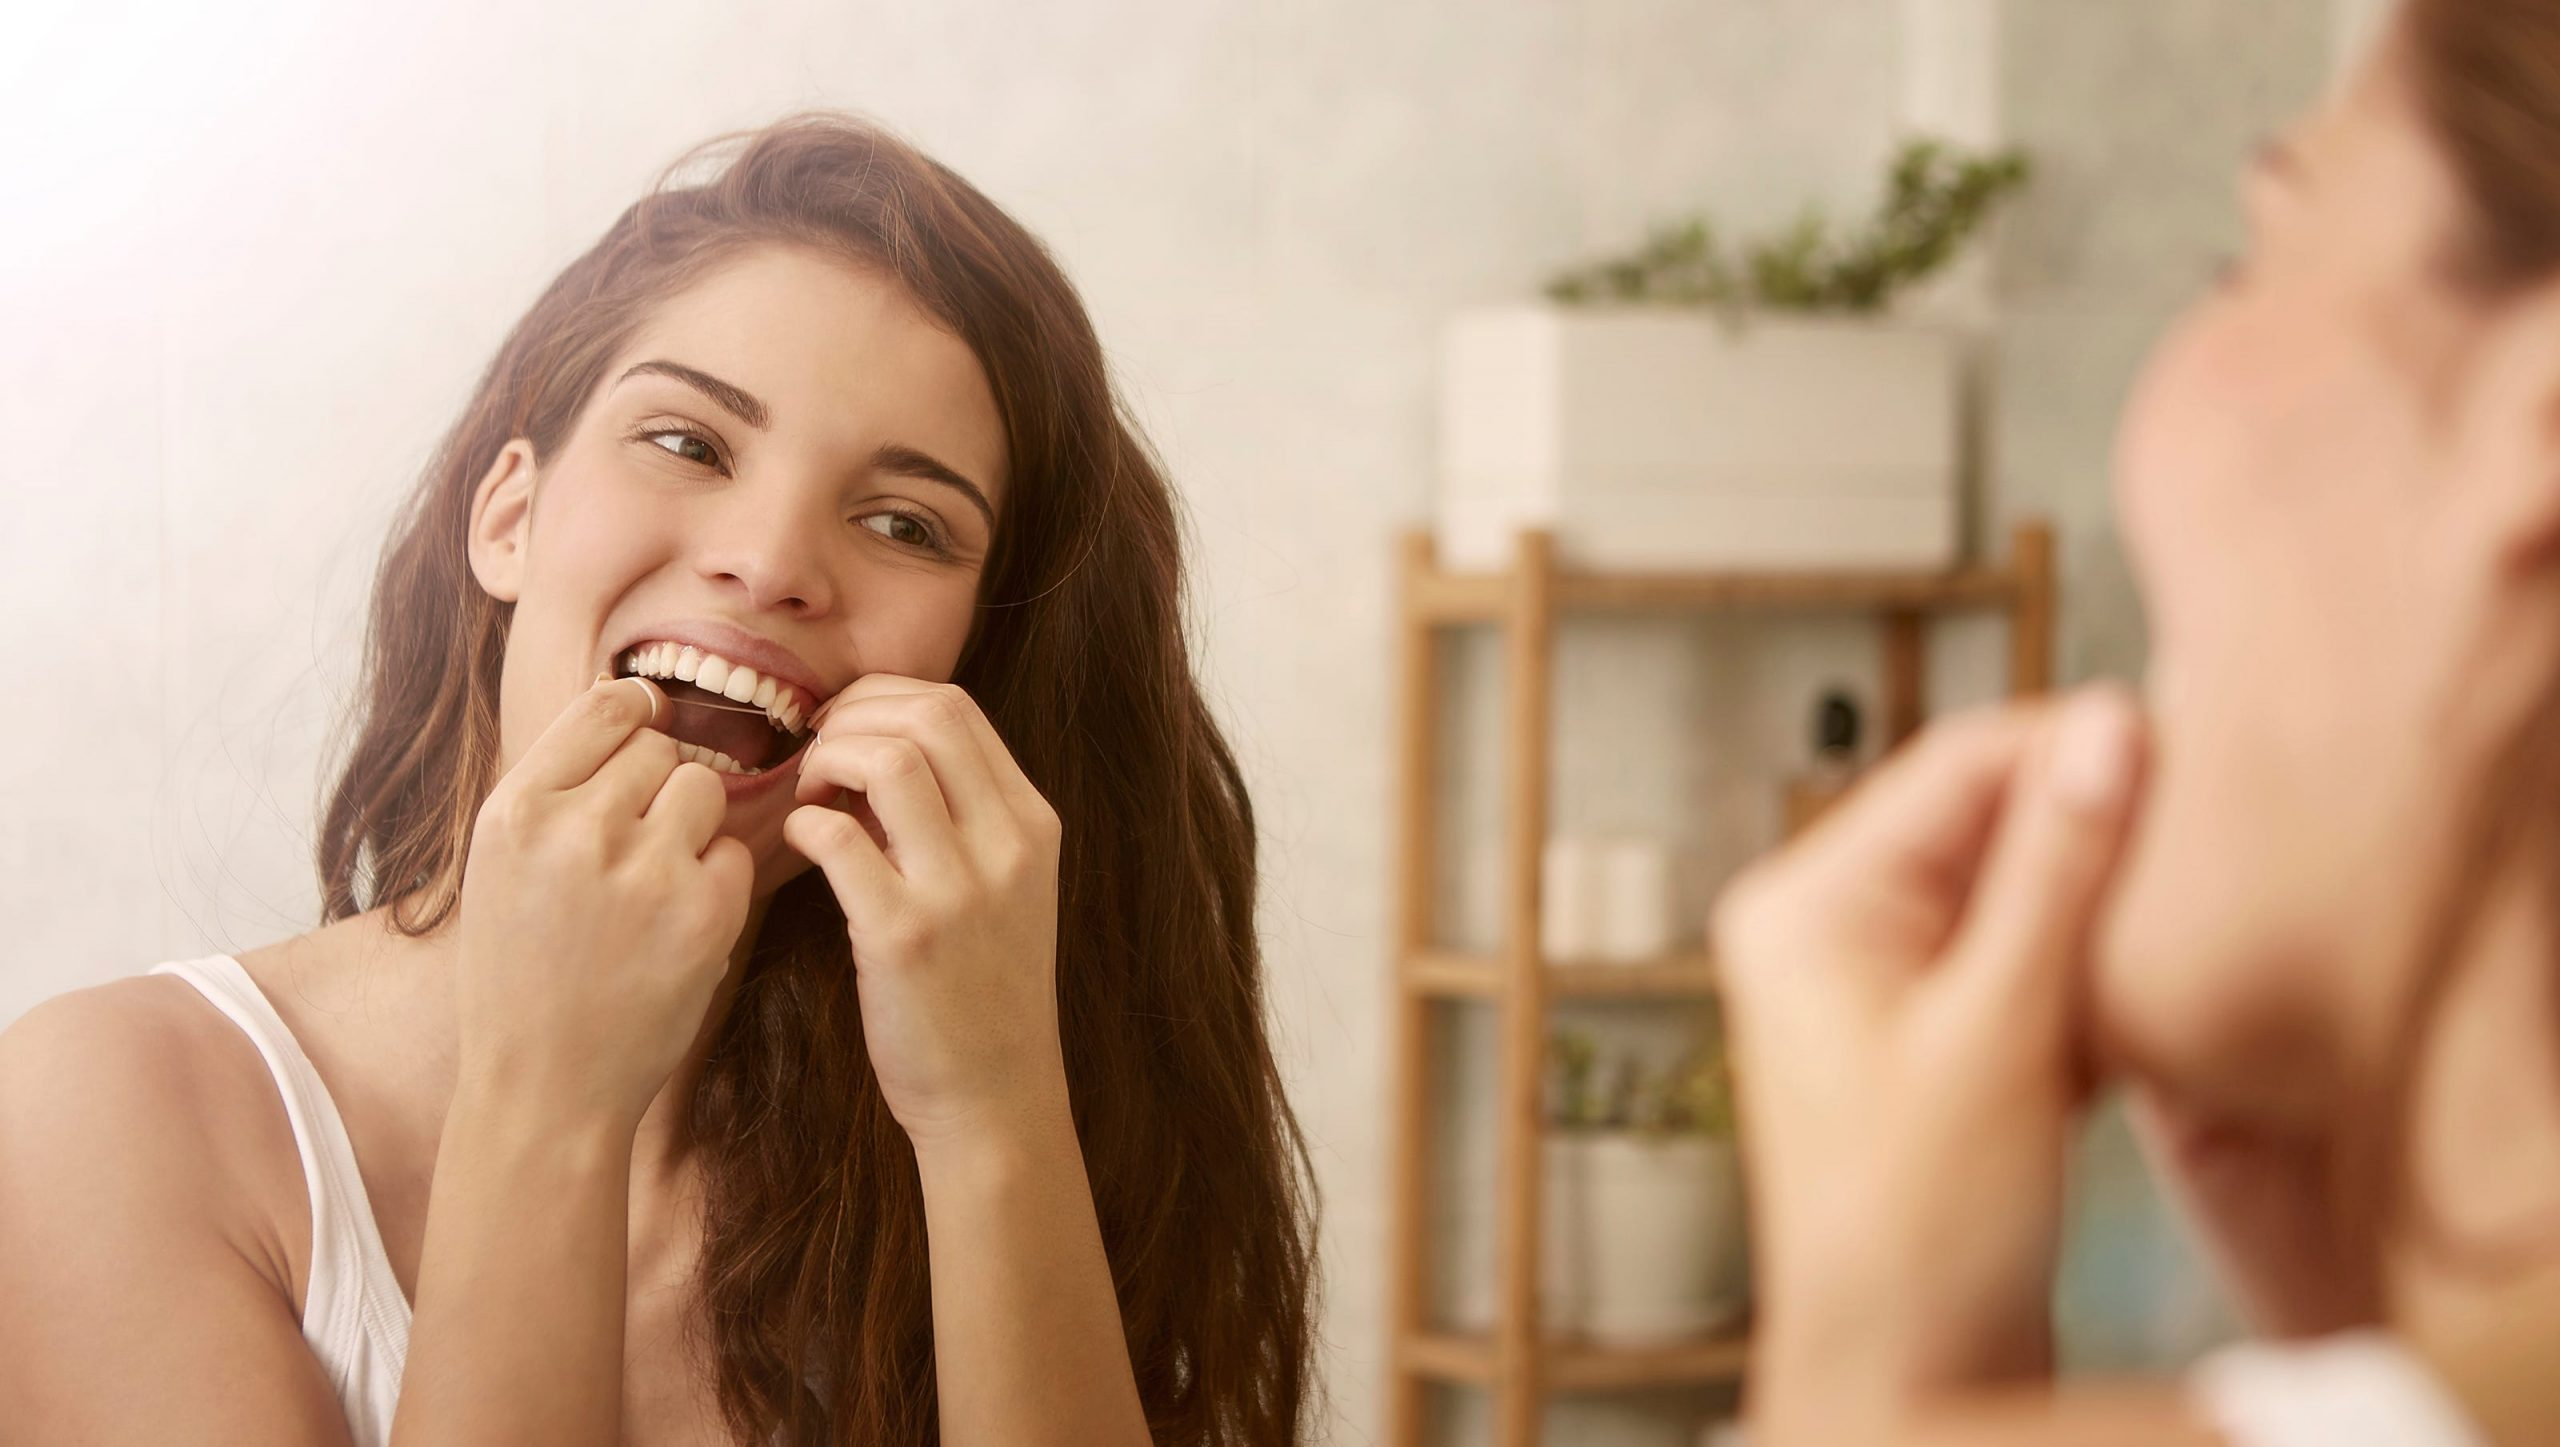 Oral-B Glide floss tied to potentially toxic PFAS chemicals, study suggests